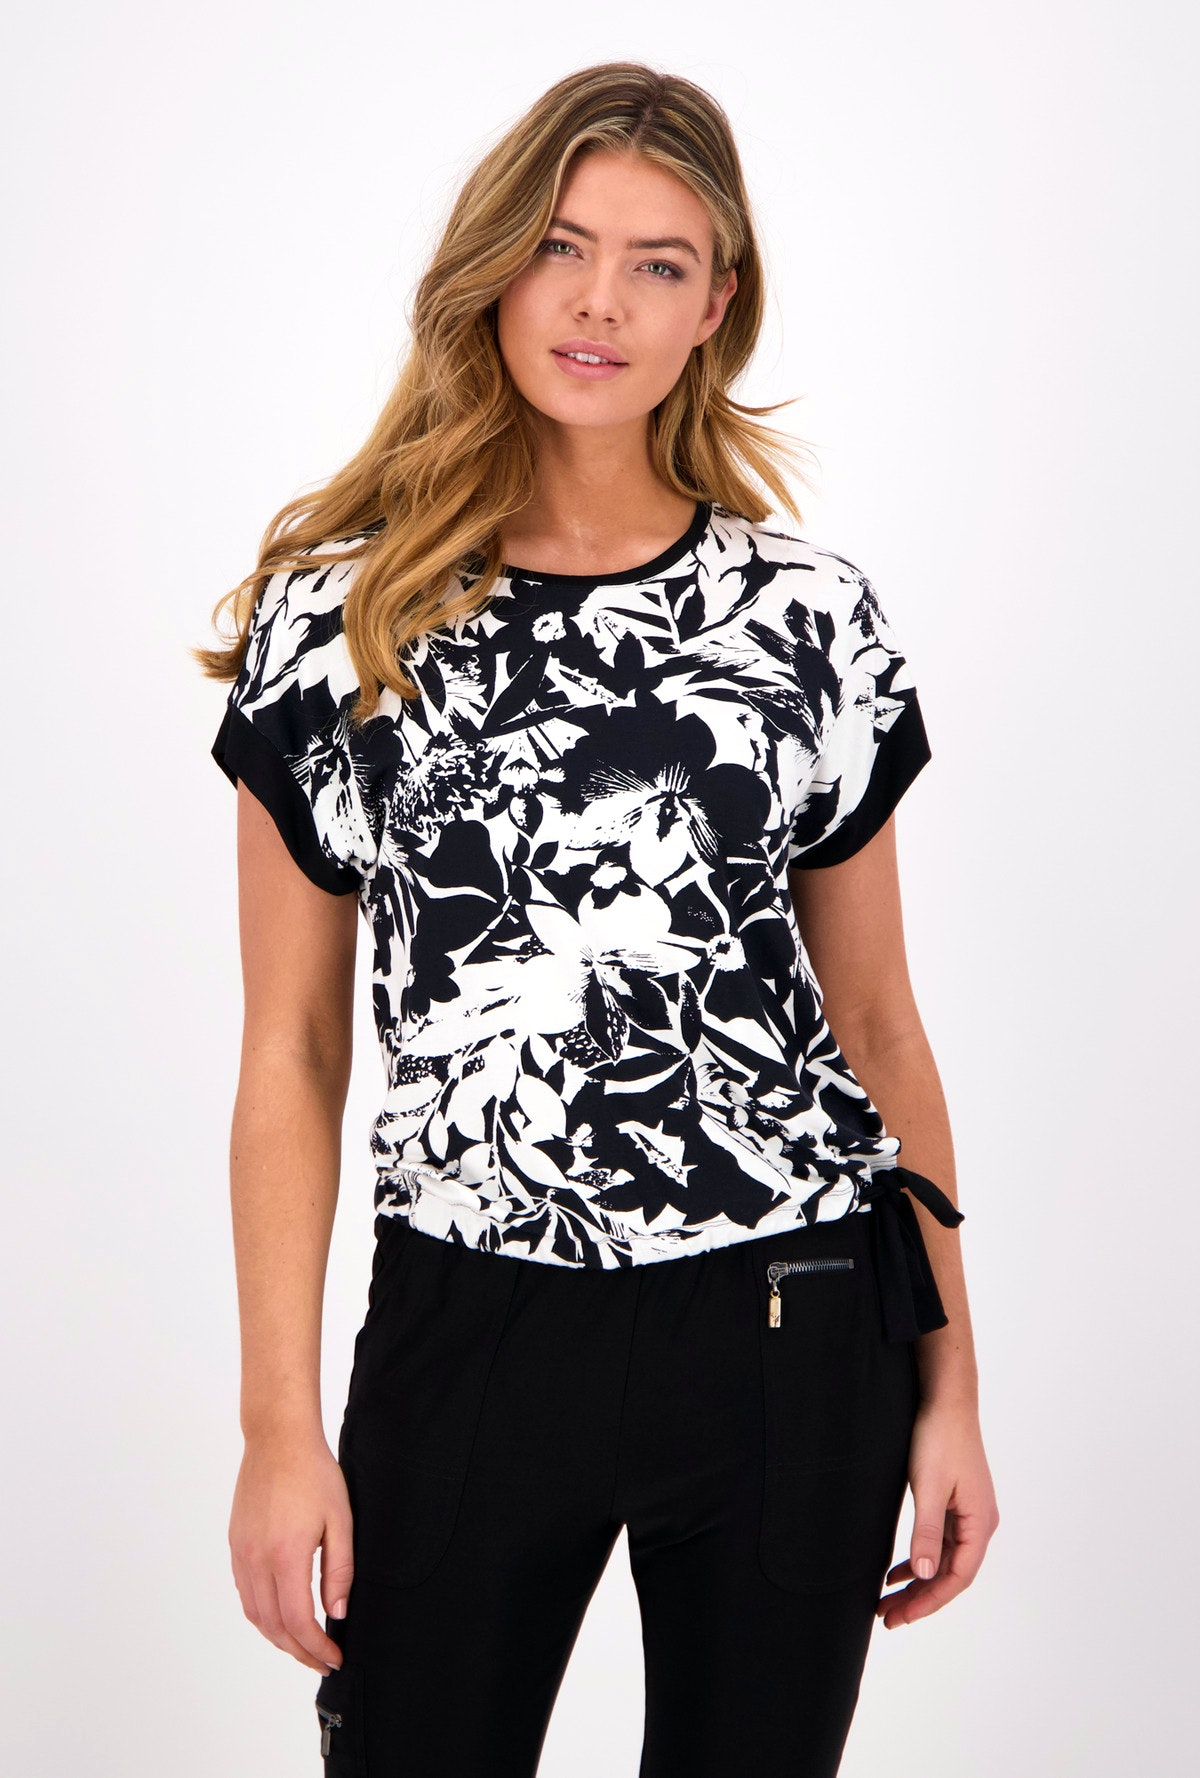 Monari Shirt Summer Time Flower Black and White